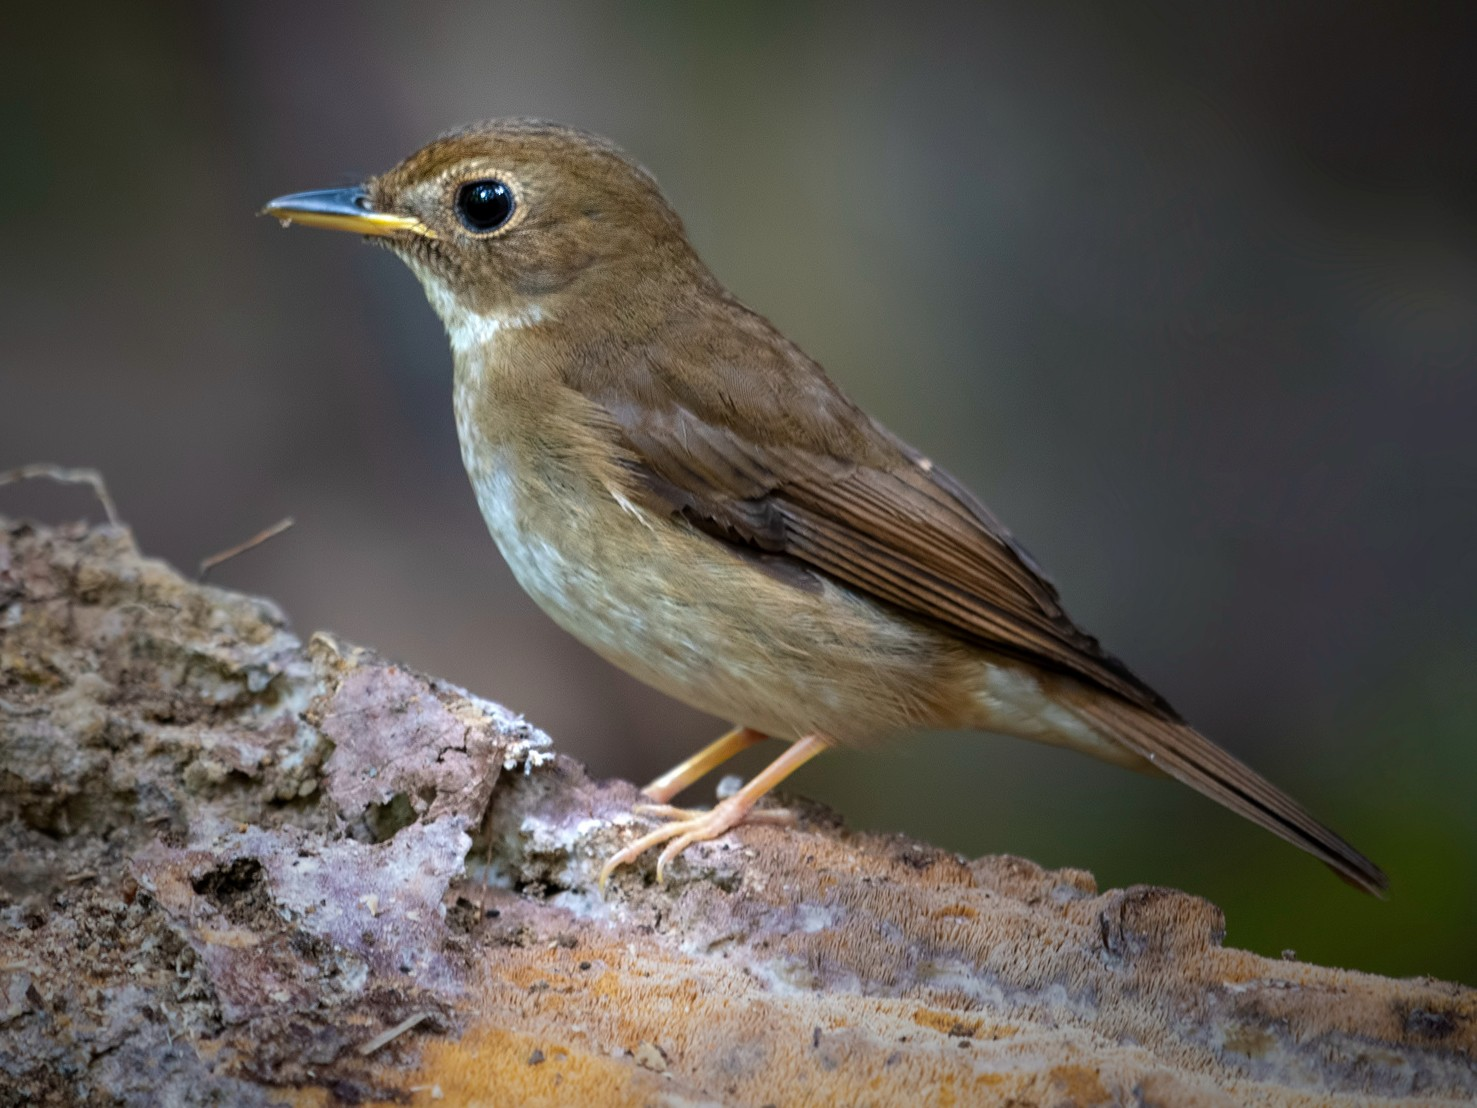 Brown-chested Jungle-Flycatcher - Wai Loon Wong